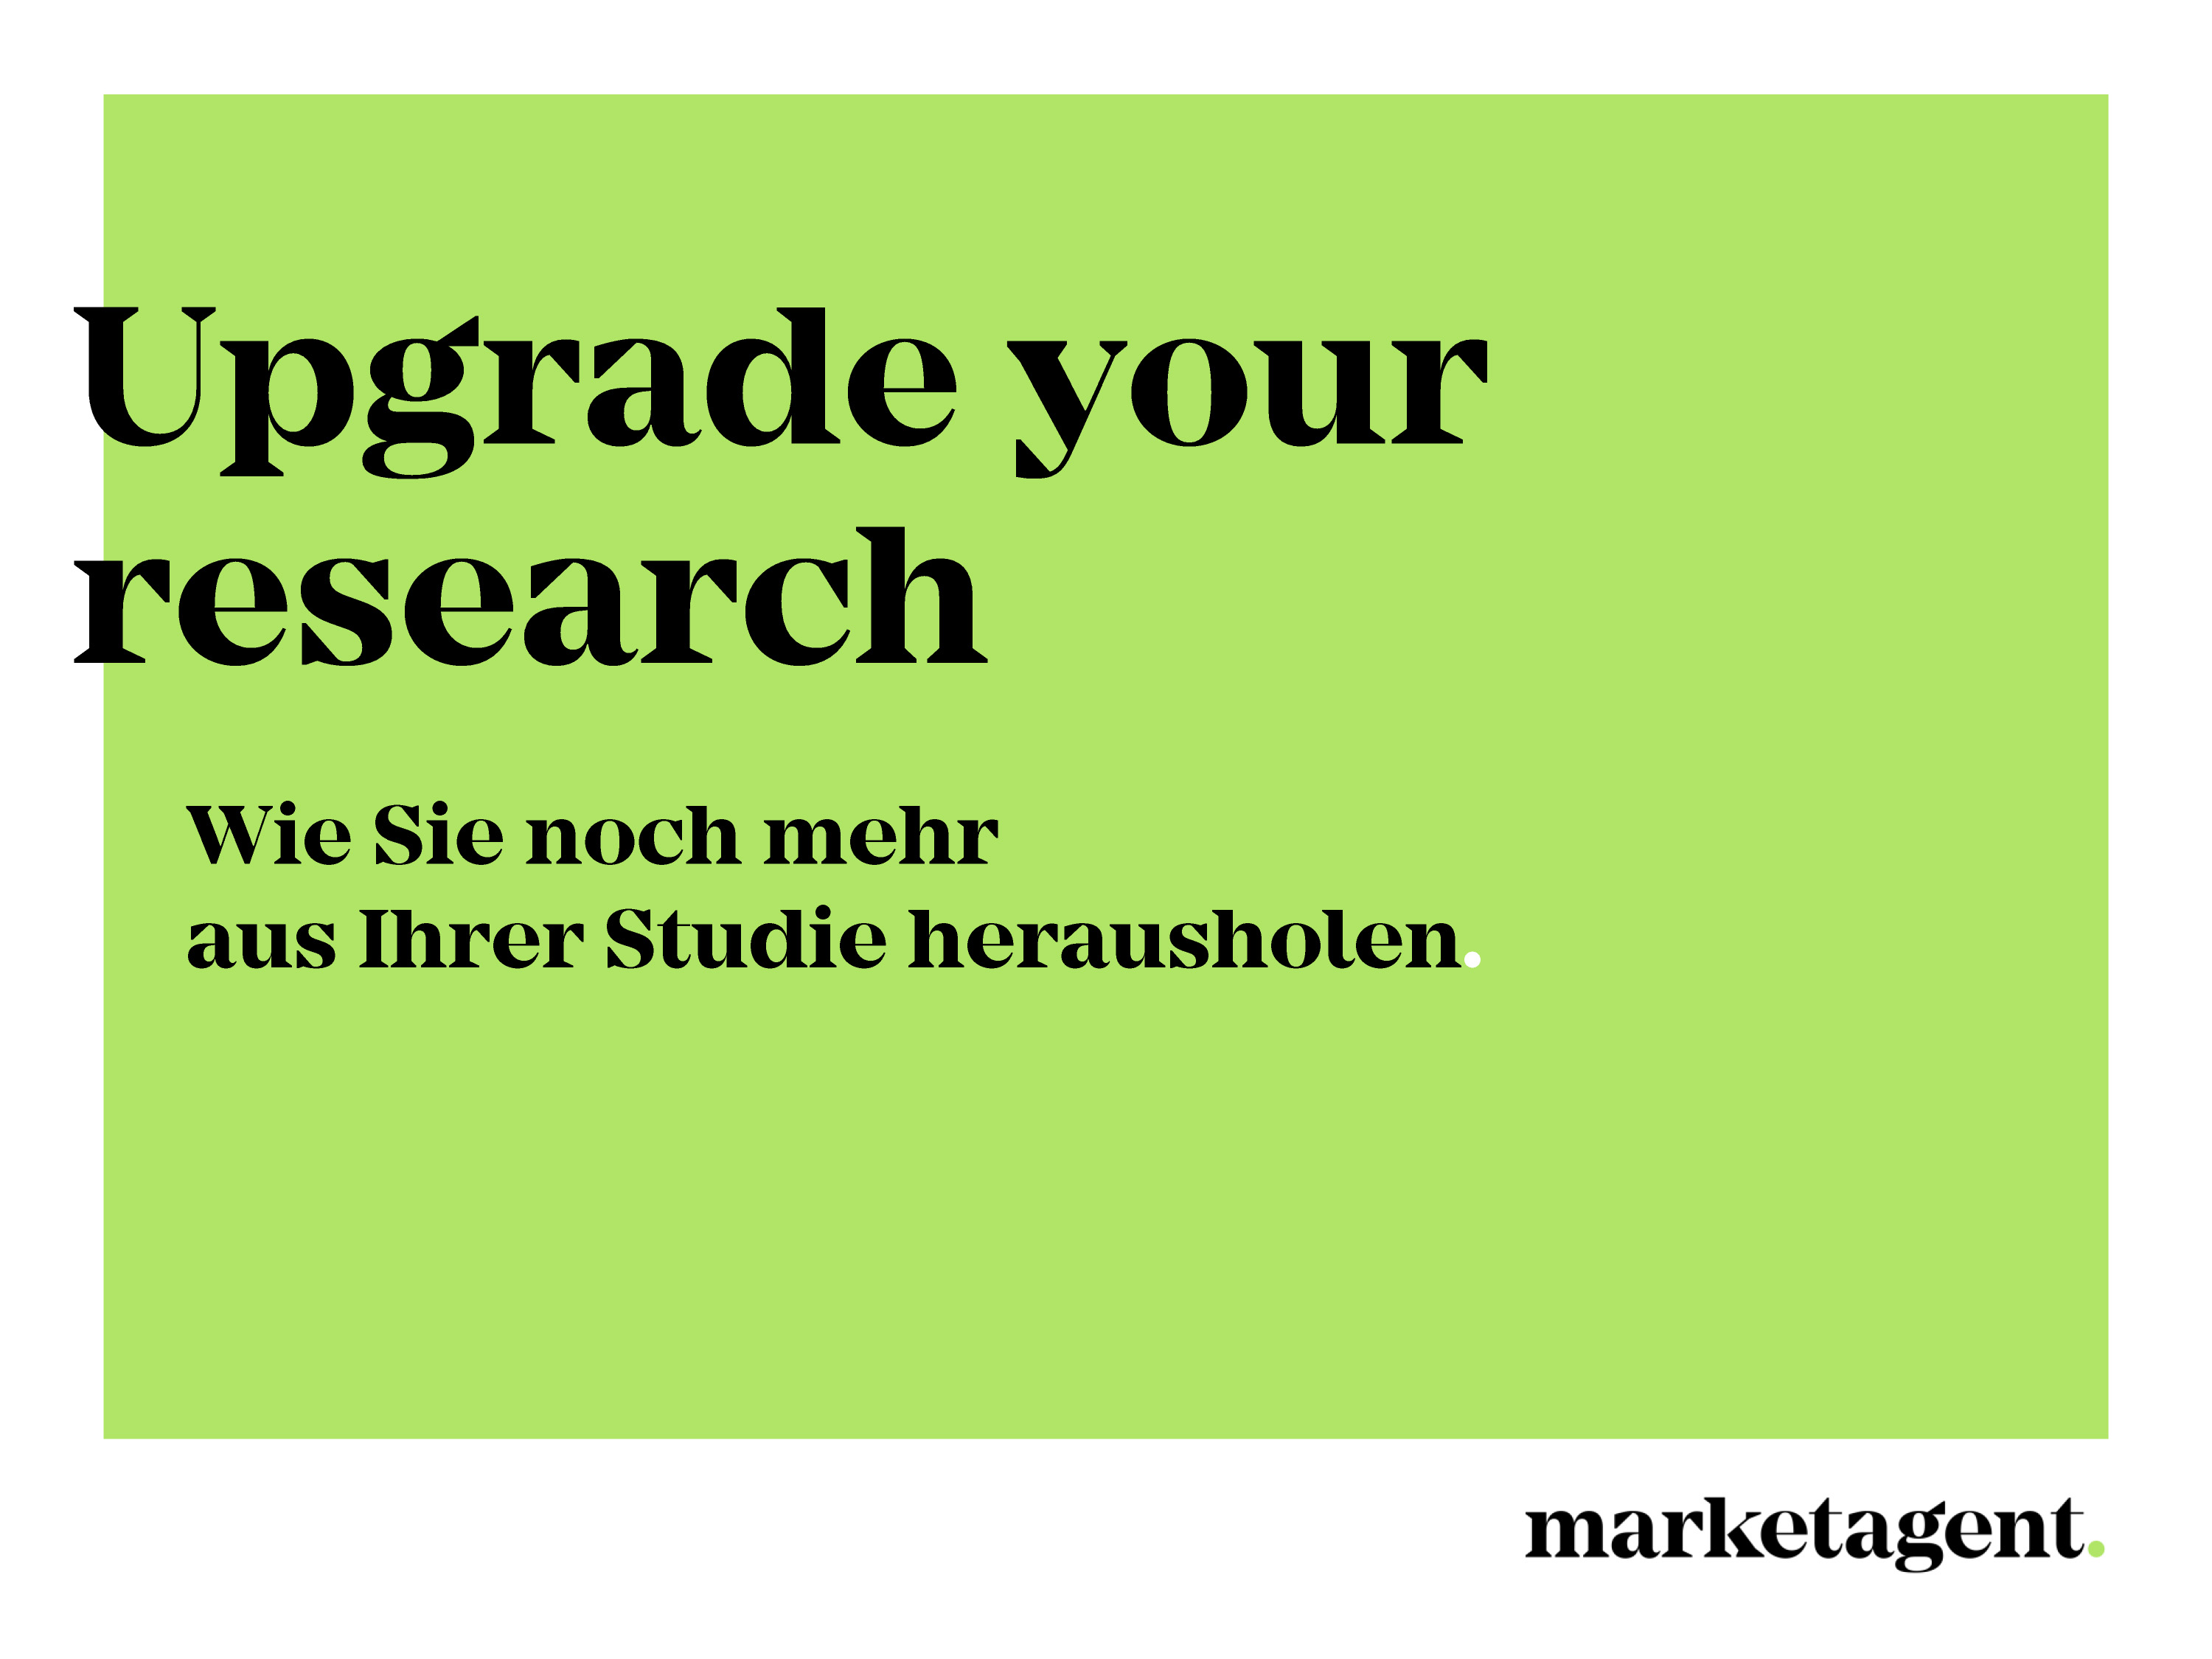 Upgrade your research